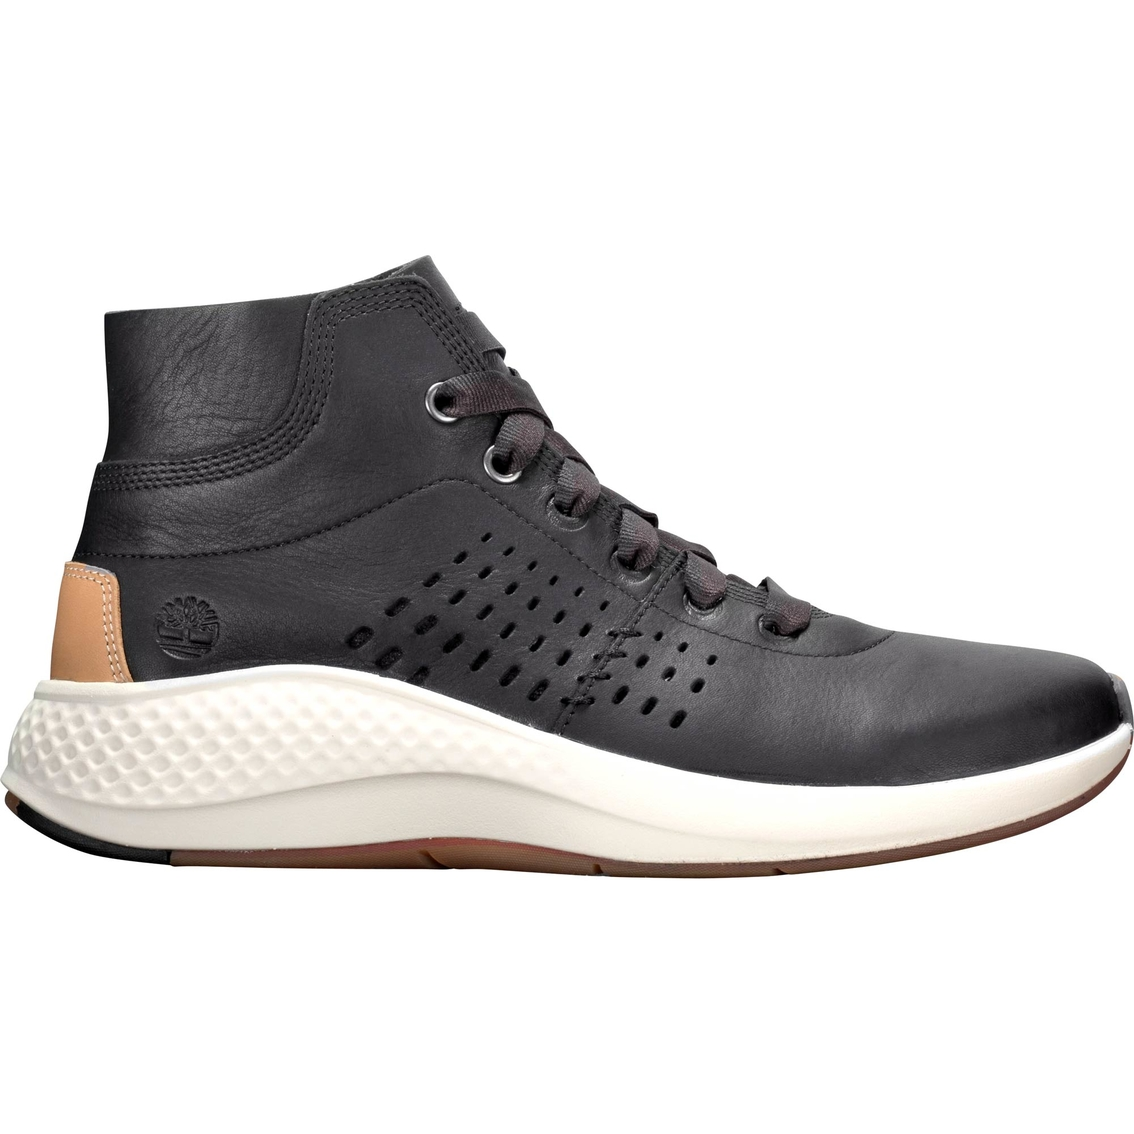 Timberland Fly Roam Go Chukka Boots | Outdoor | Shoes | Shop